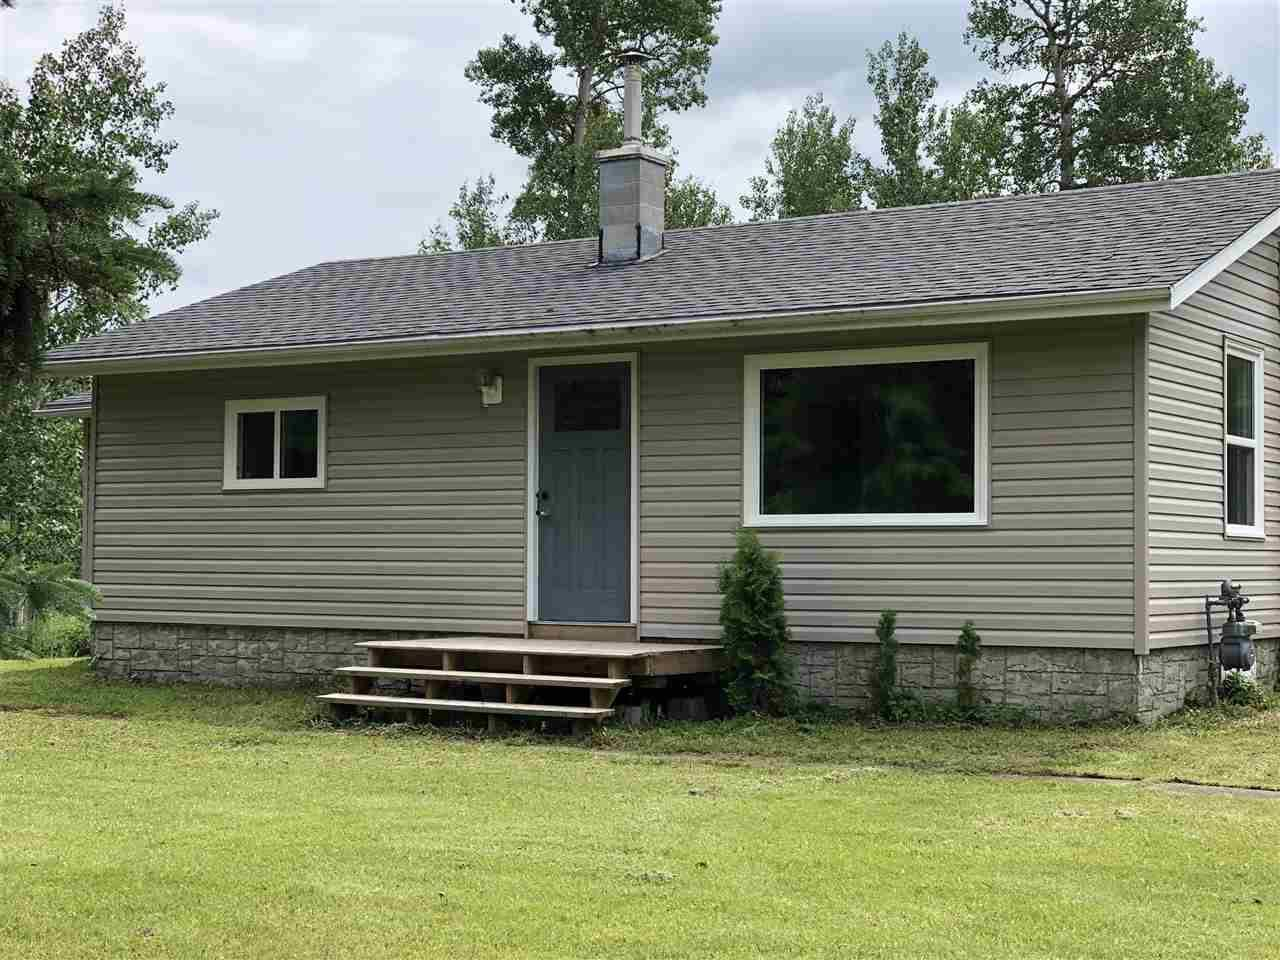 House for sale at 4015 633 Hy Rural Lac Ste. Anne County Alberta - MLS: E4163439